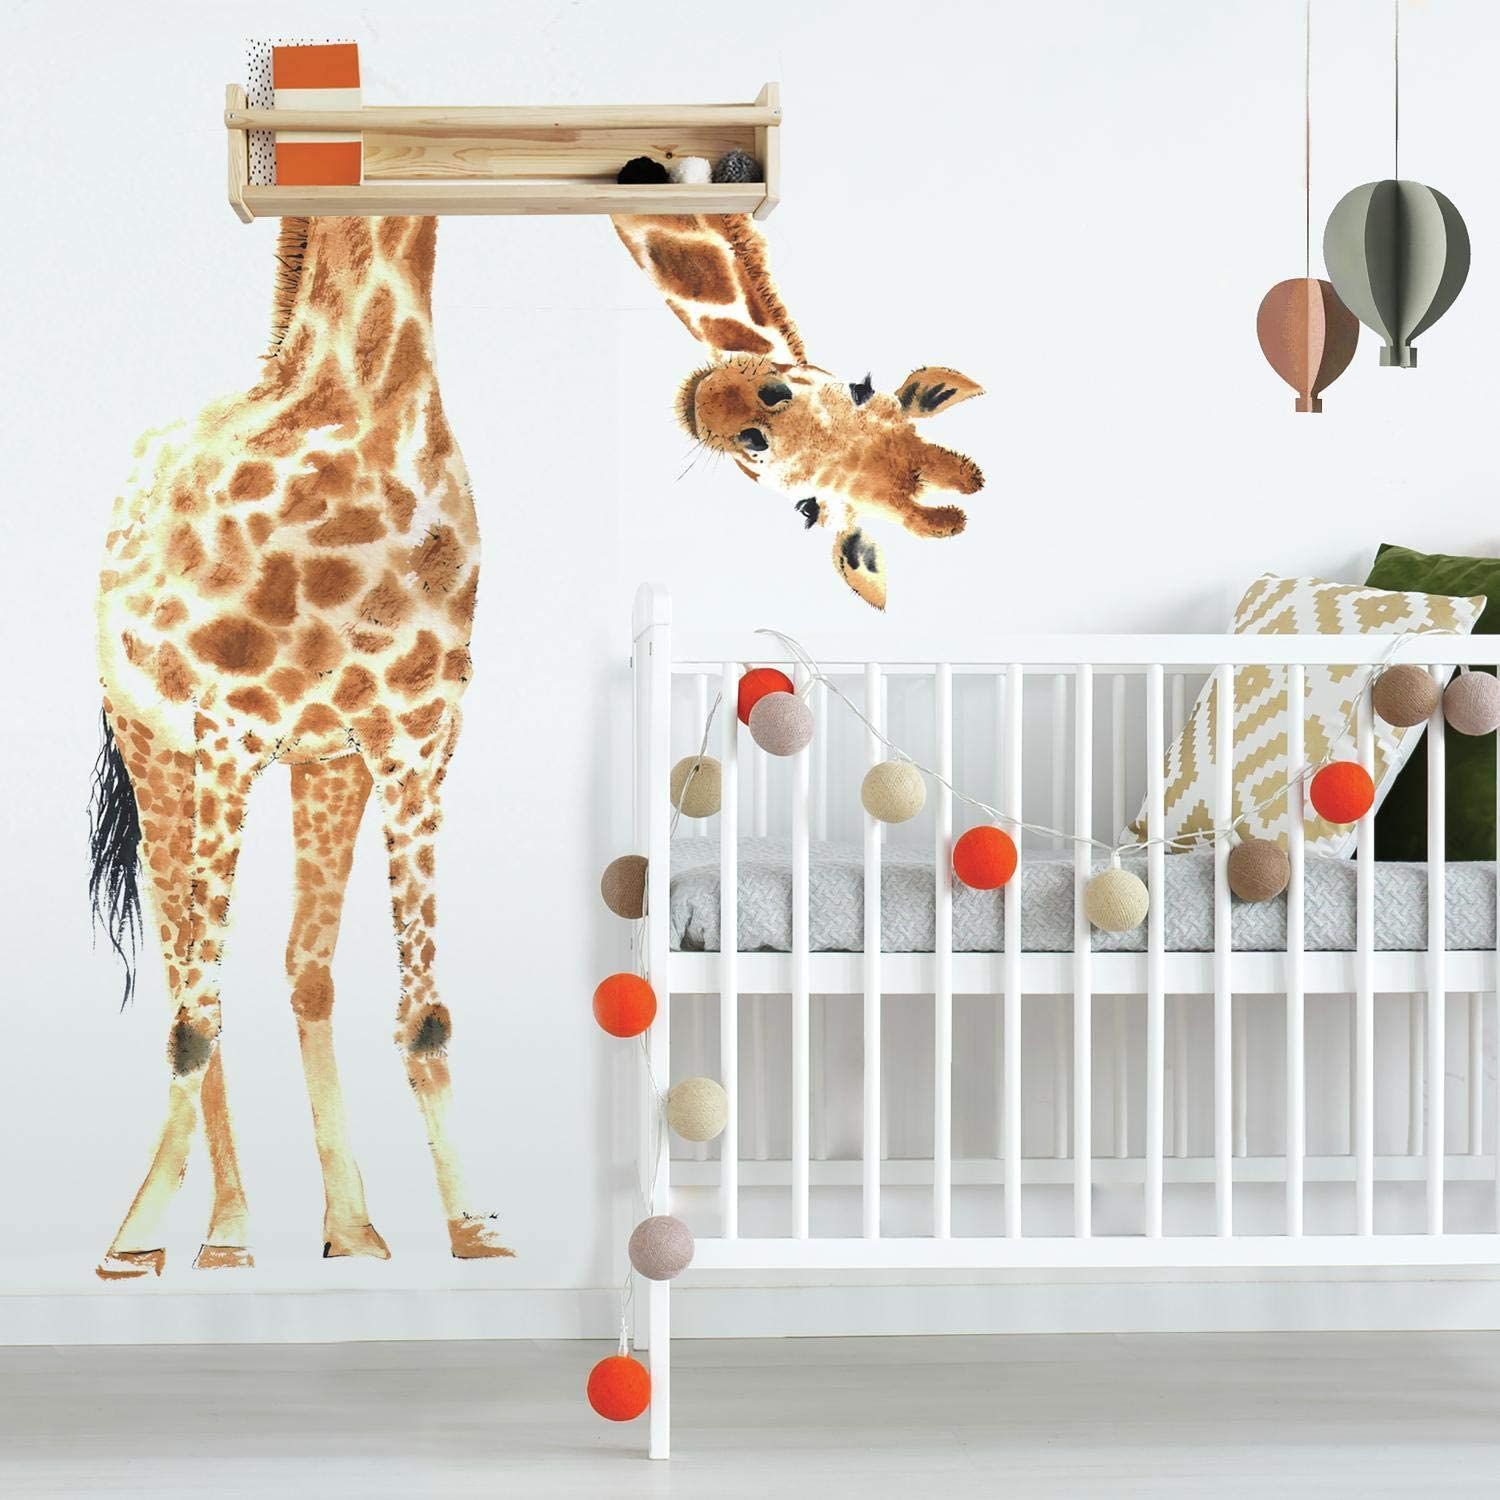 Roommates Rmk4026gm Giraffe Peel And Stick Giant Wall Decals Brown Green Black